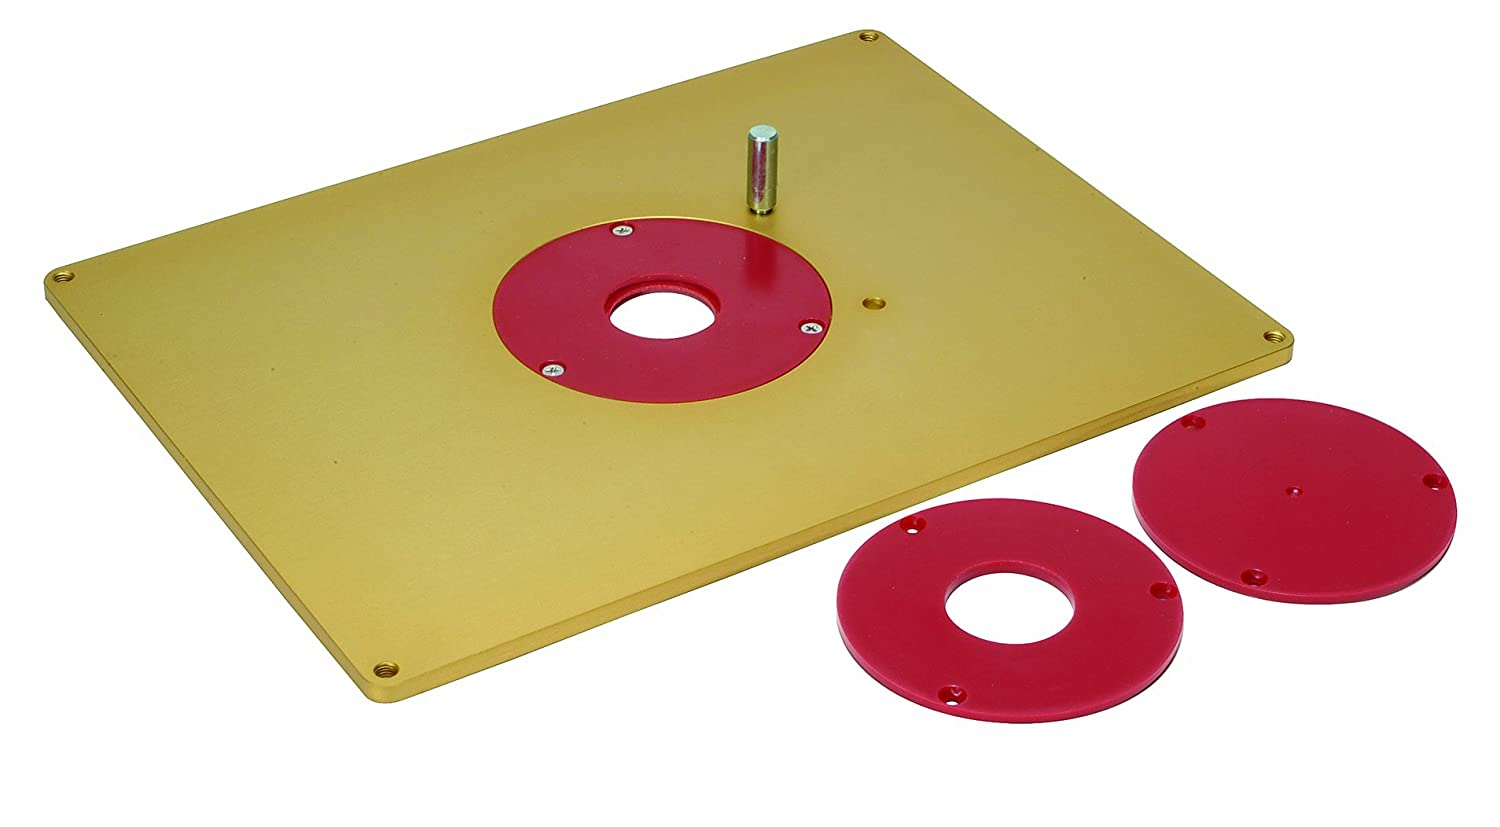 MLCS 9334 1/4-Inch Thick Aluminum Router Plate